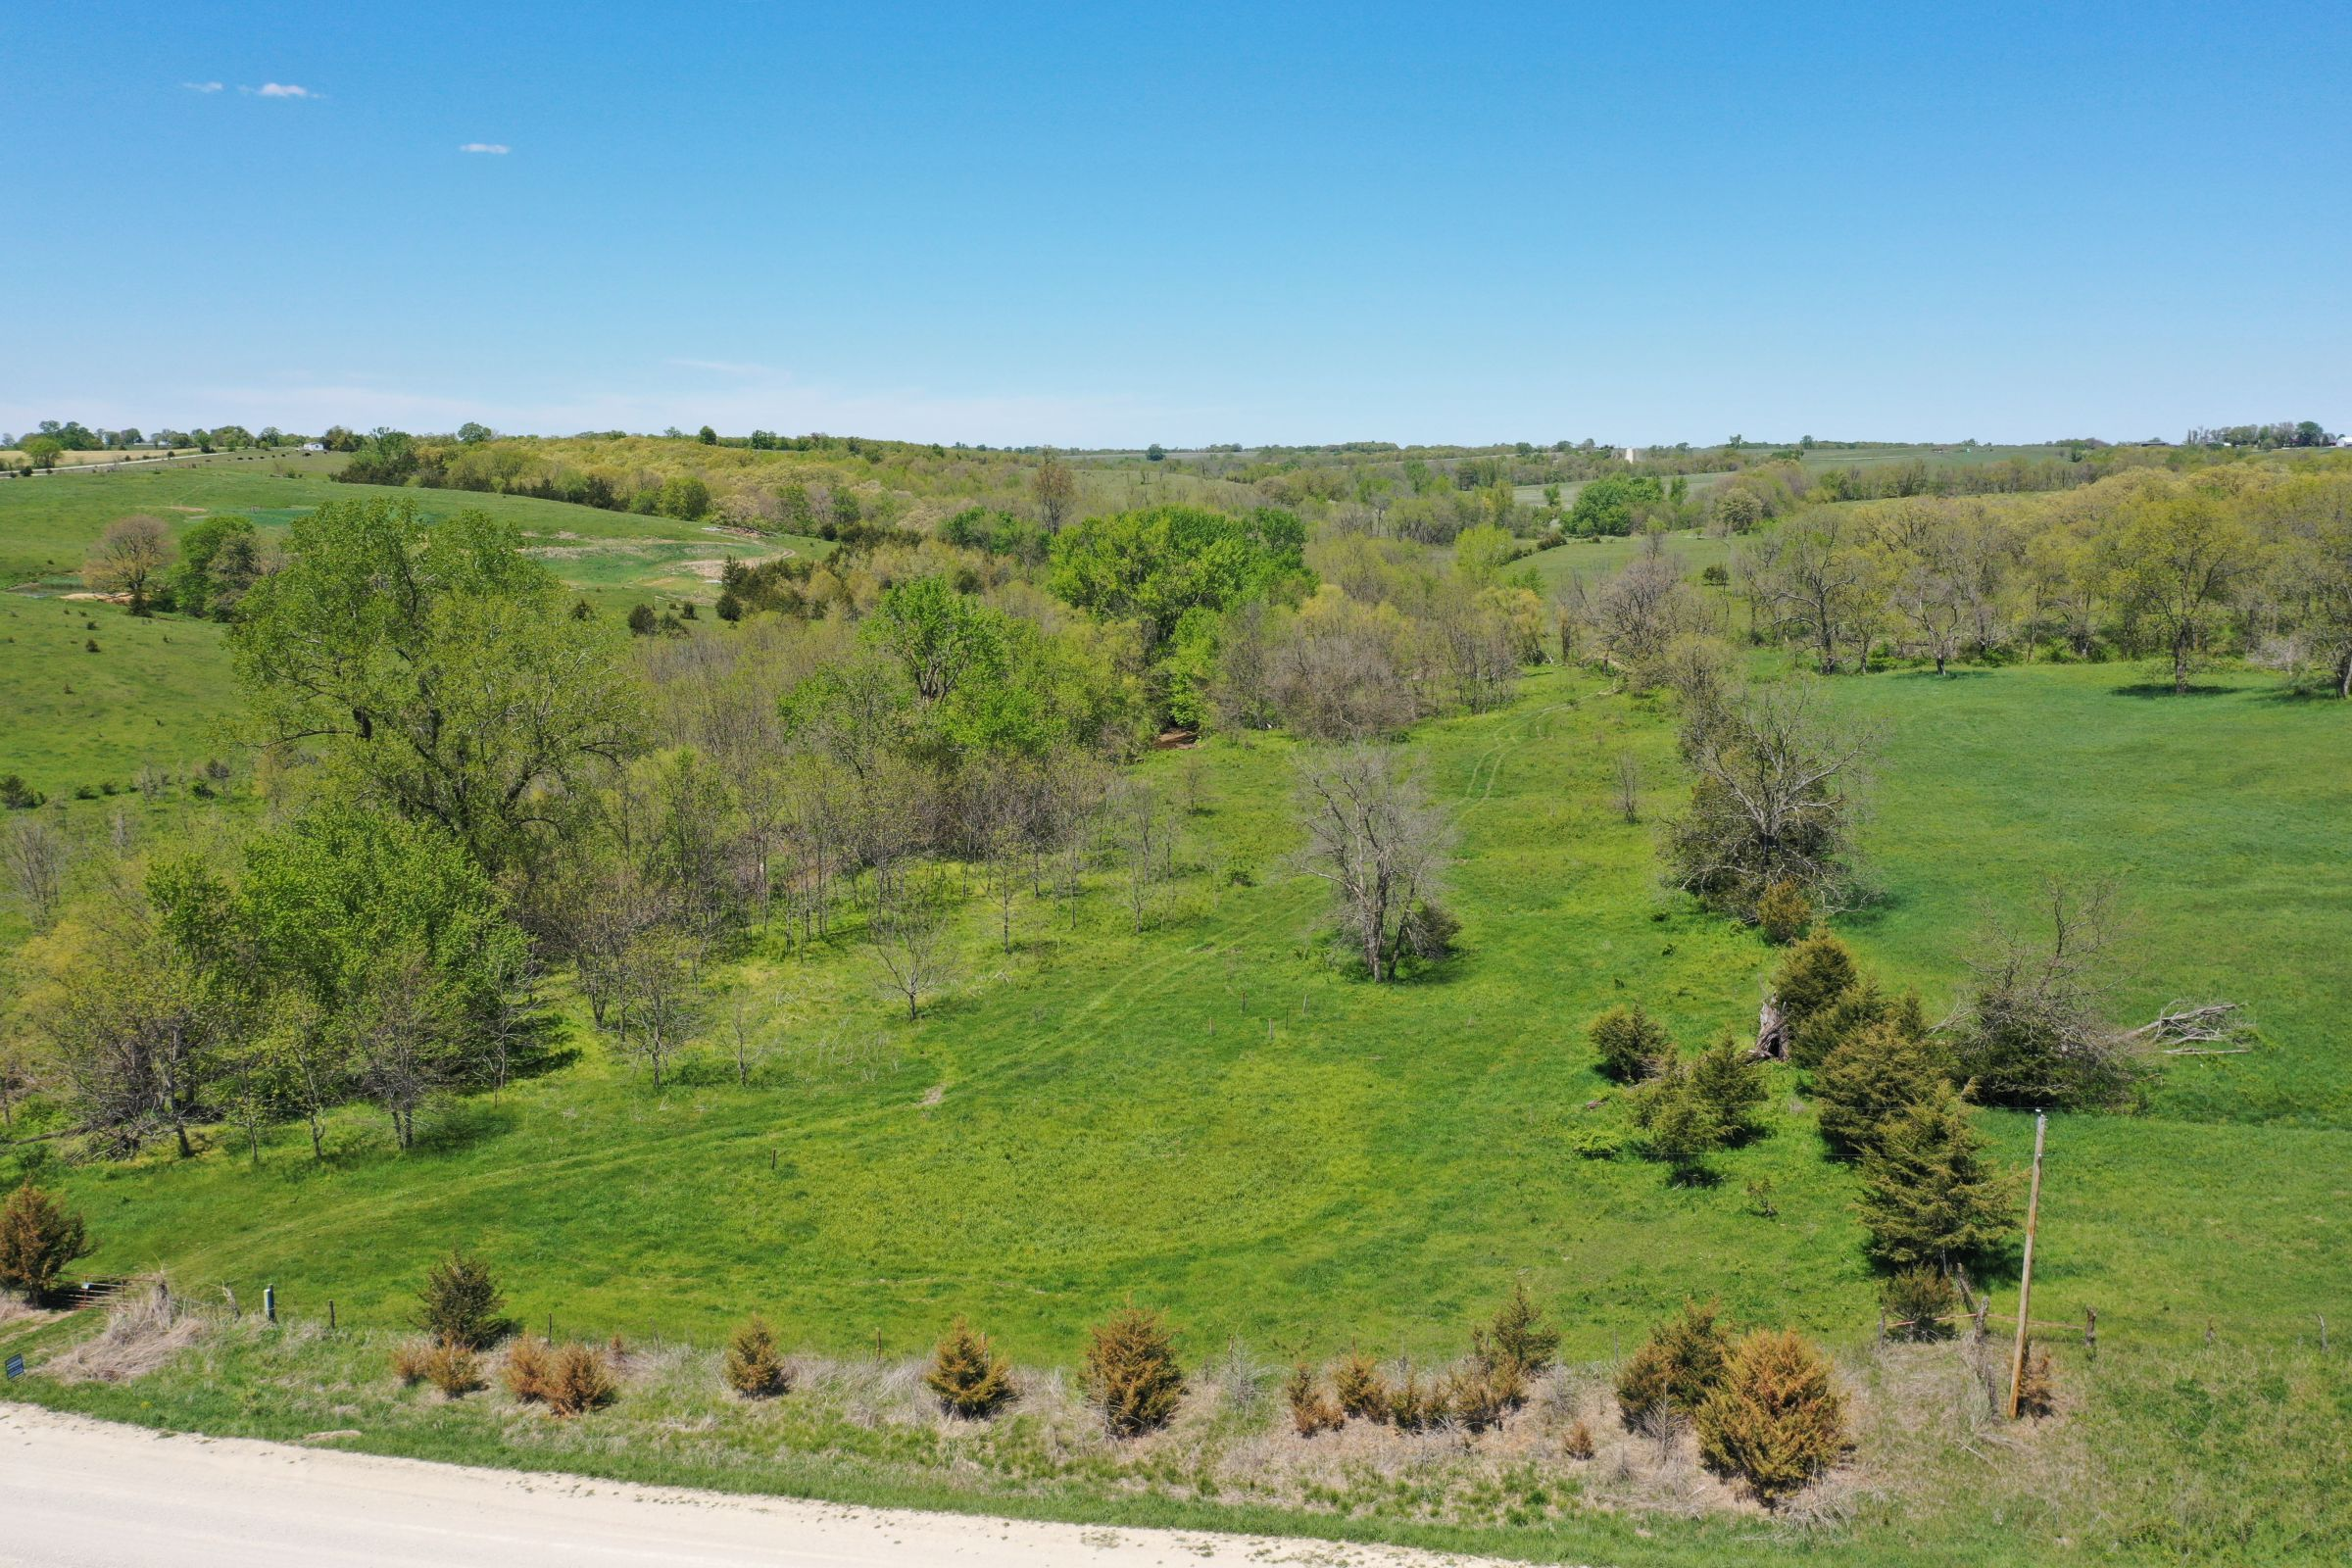 land-decatur-county-iowa-99-acres-listing-number-15525-2-2021-05-14-172508.JPG